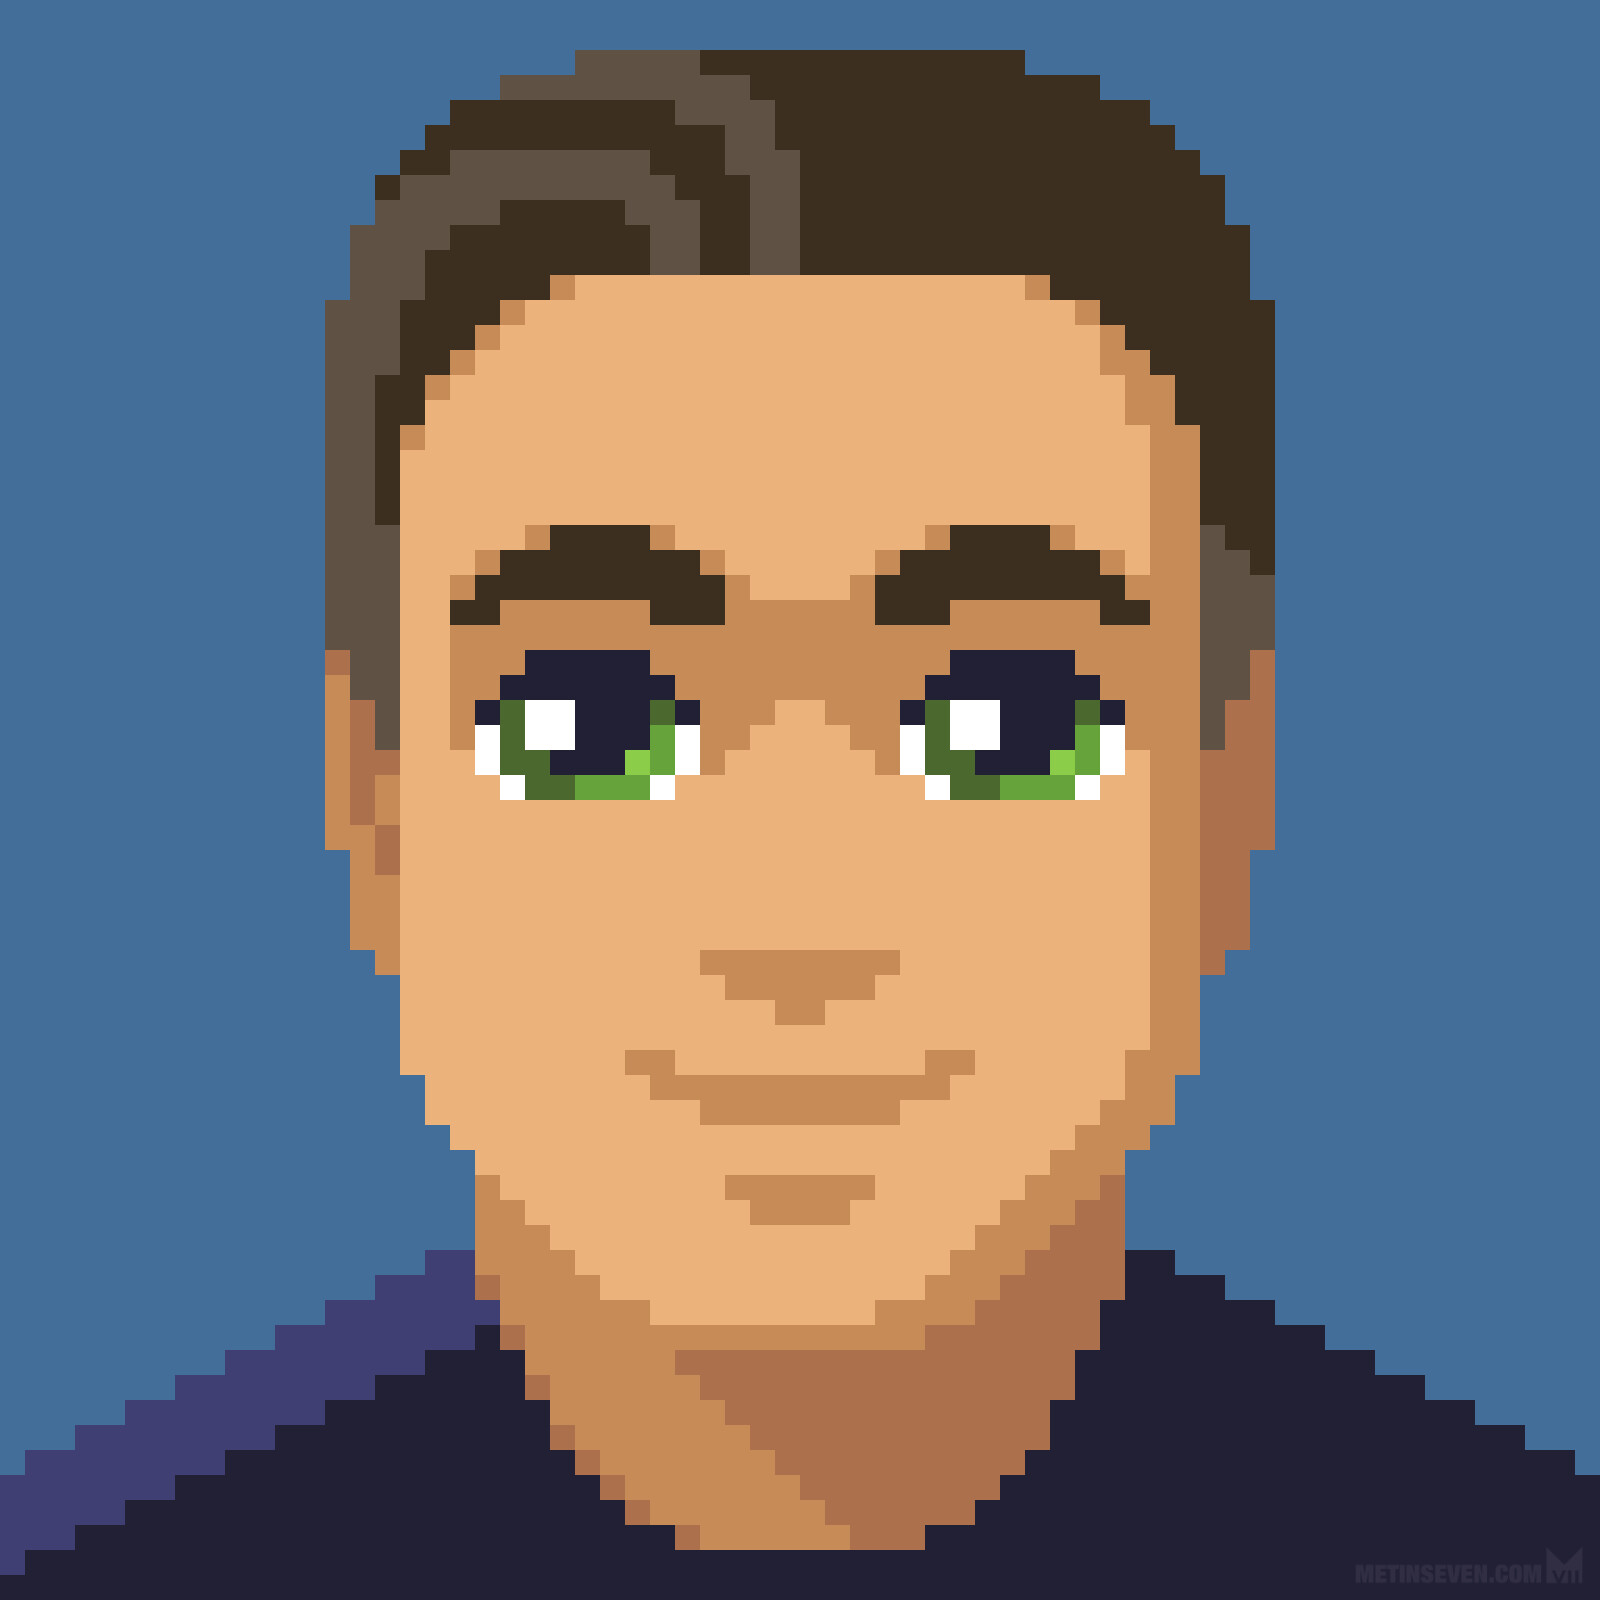 Low-resolution 8-bit pixel art self-portrait